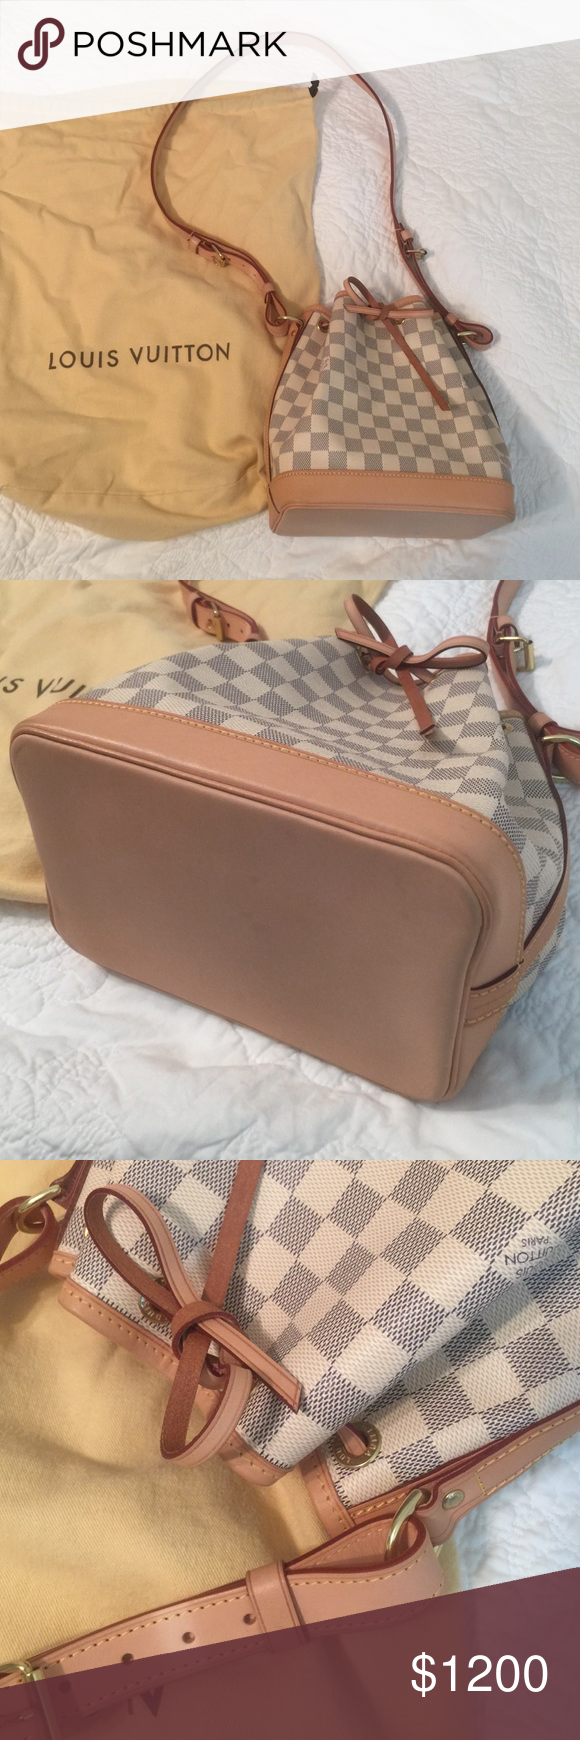 ff6b8f16f NEW PICS - Louis Vuitton Noe BB Very lightly used condition, only used a  couple times. Can provide LV authenticity! Slight discoloration from where  it was ...